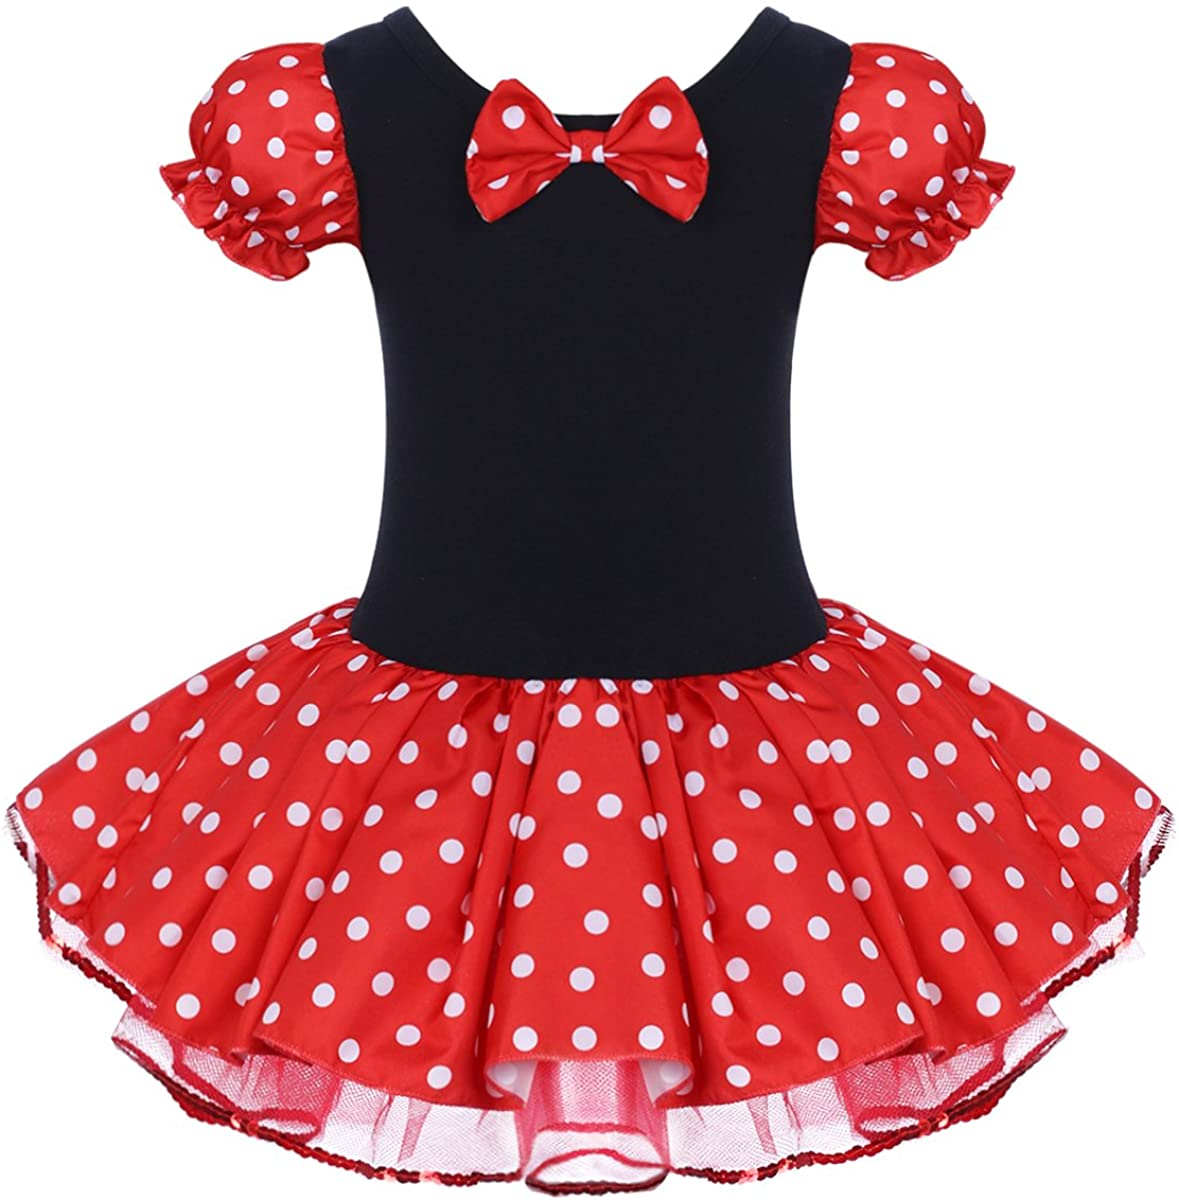 Toddler Baby Girl Polka Dots Party Costume D Fancy Popular products Tutu Princess Los Angeles Mall